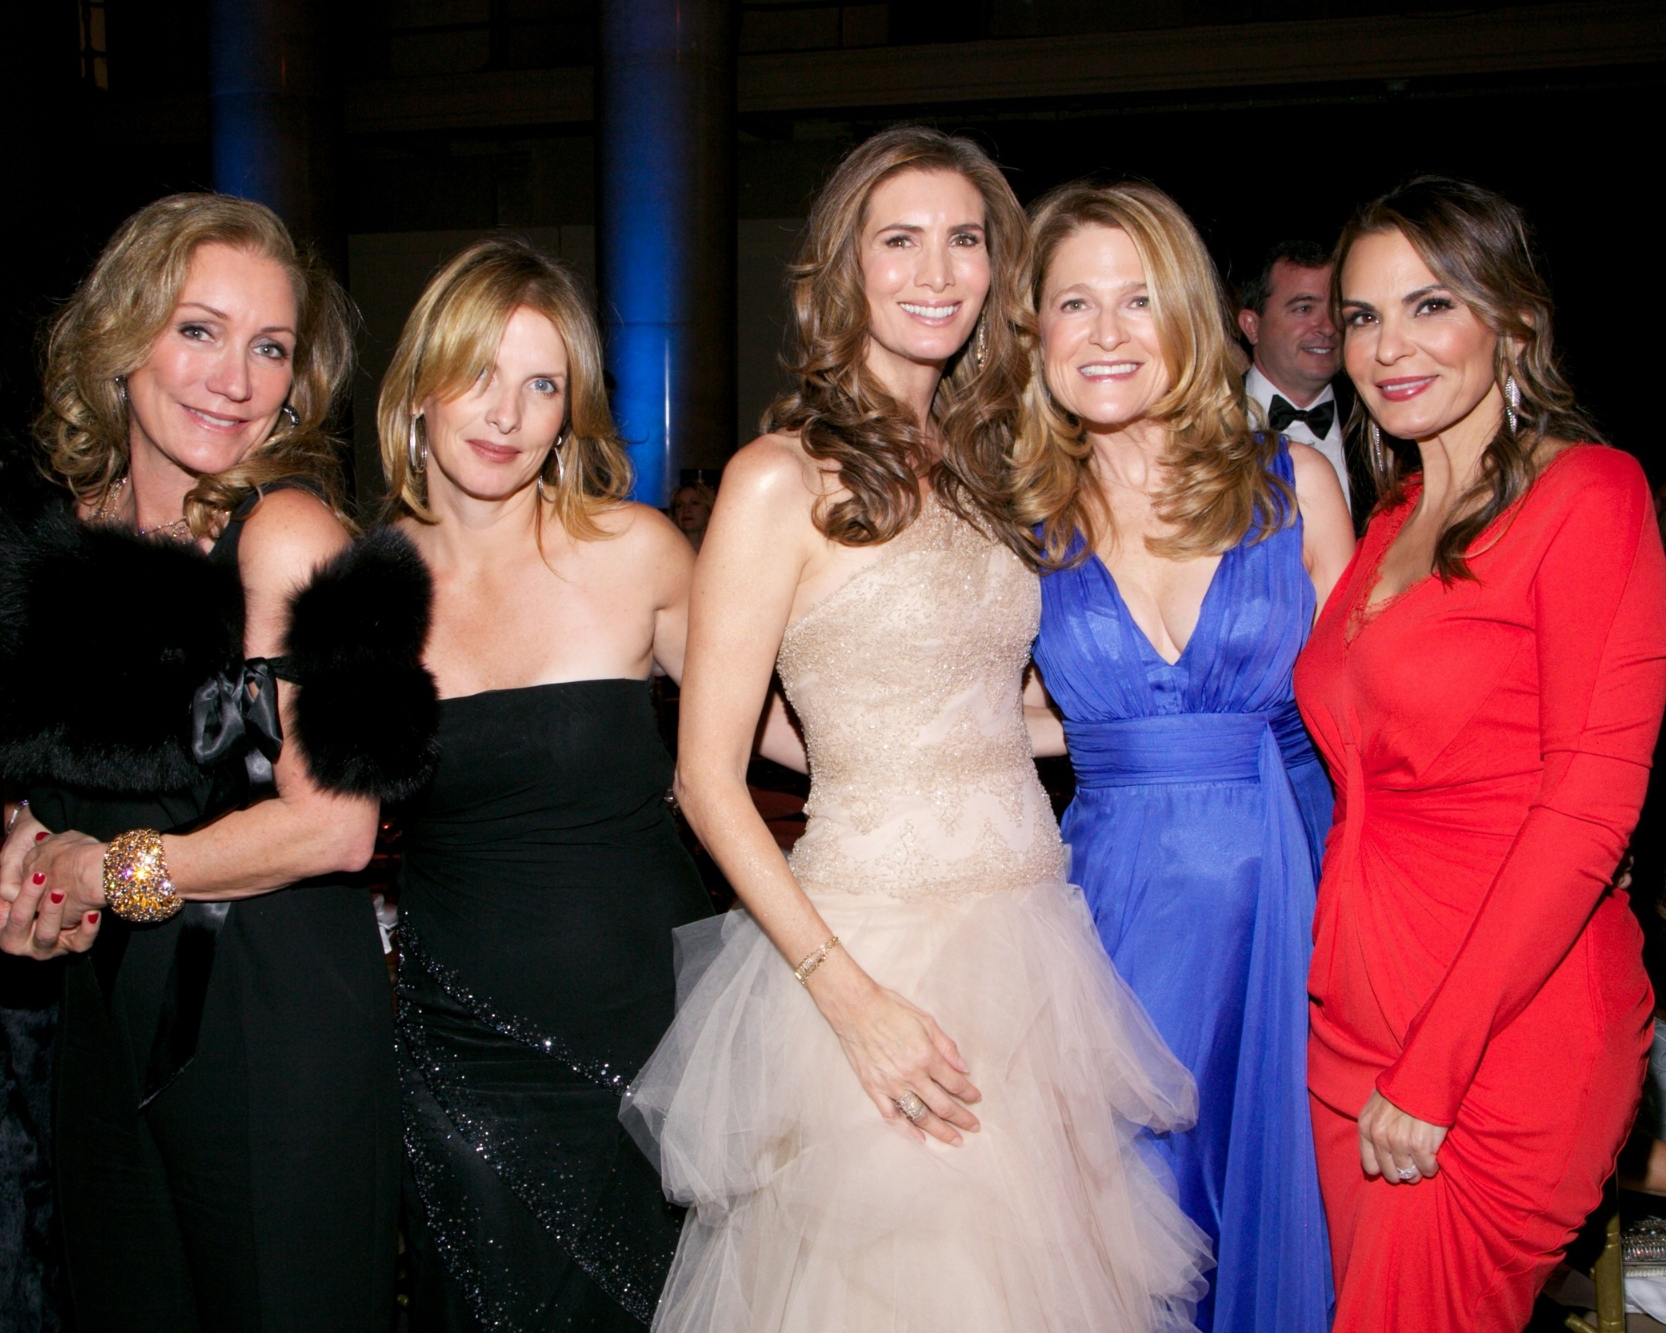 Shelly Litvak, Meryl George, Christine Zilber, Sheila Walker, and Trish Cardozo © 2014 Julie Skarratt Photography Inc./U.S. Fund for UNICEF